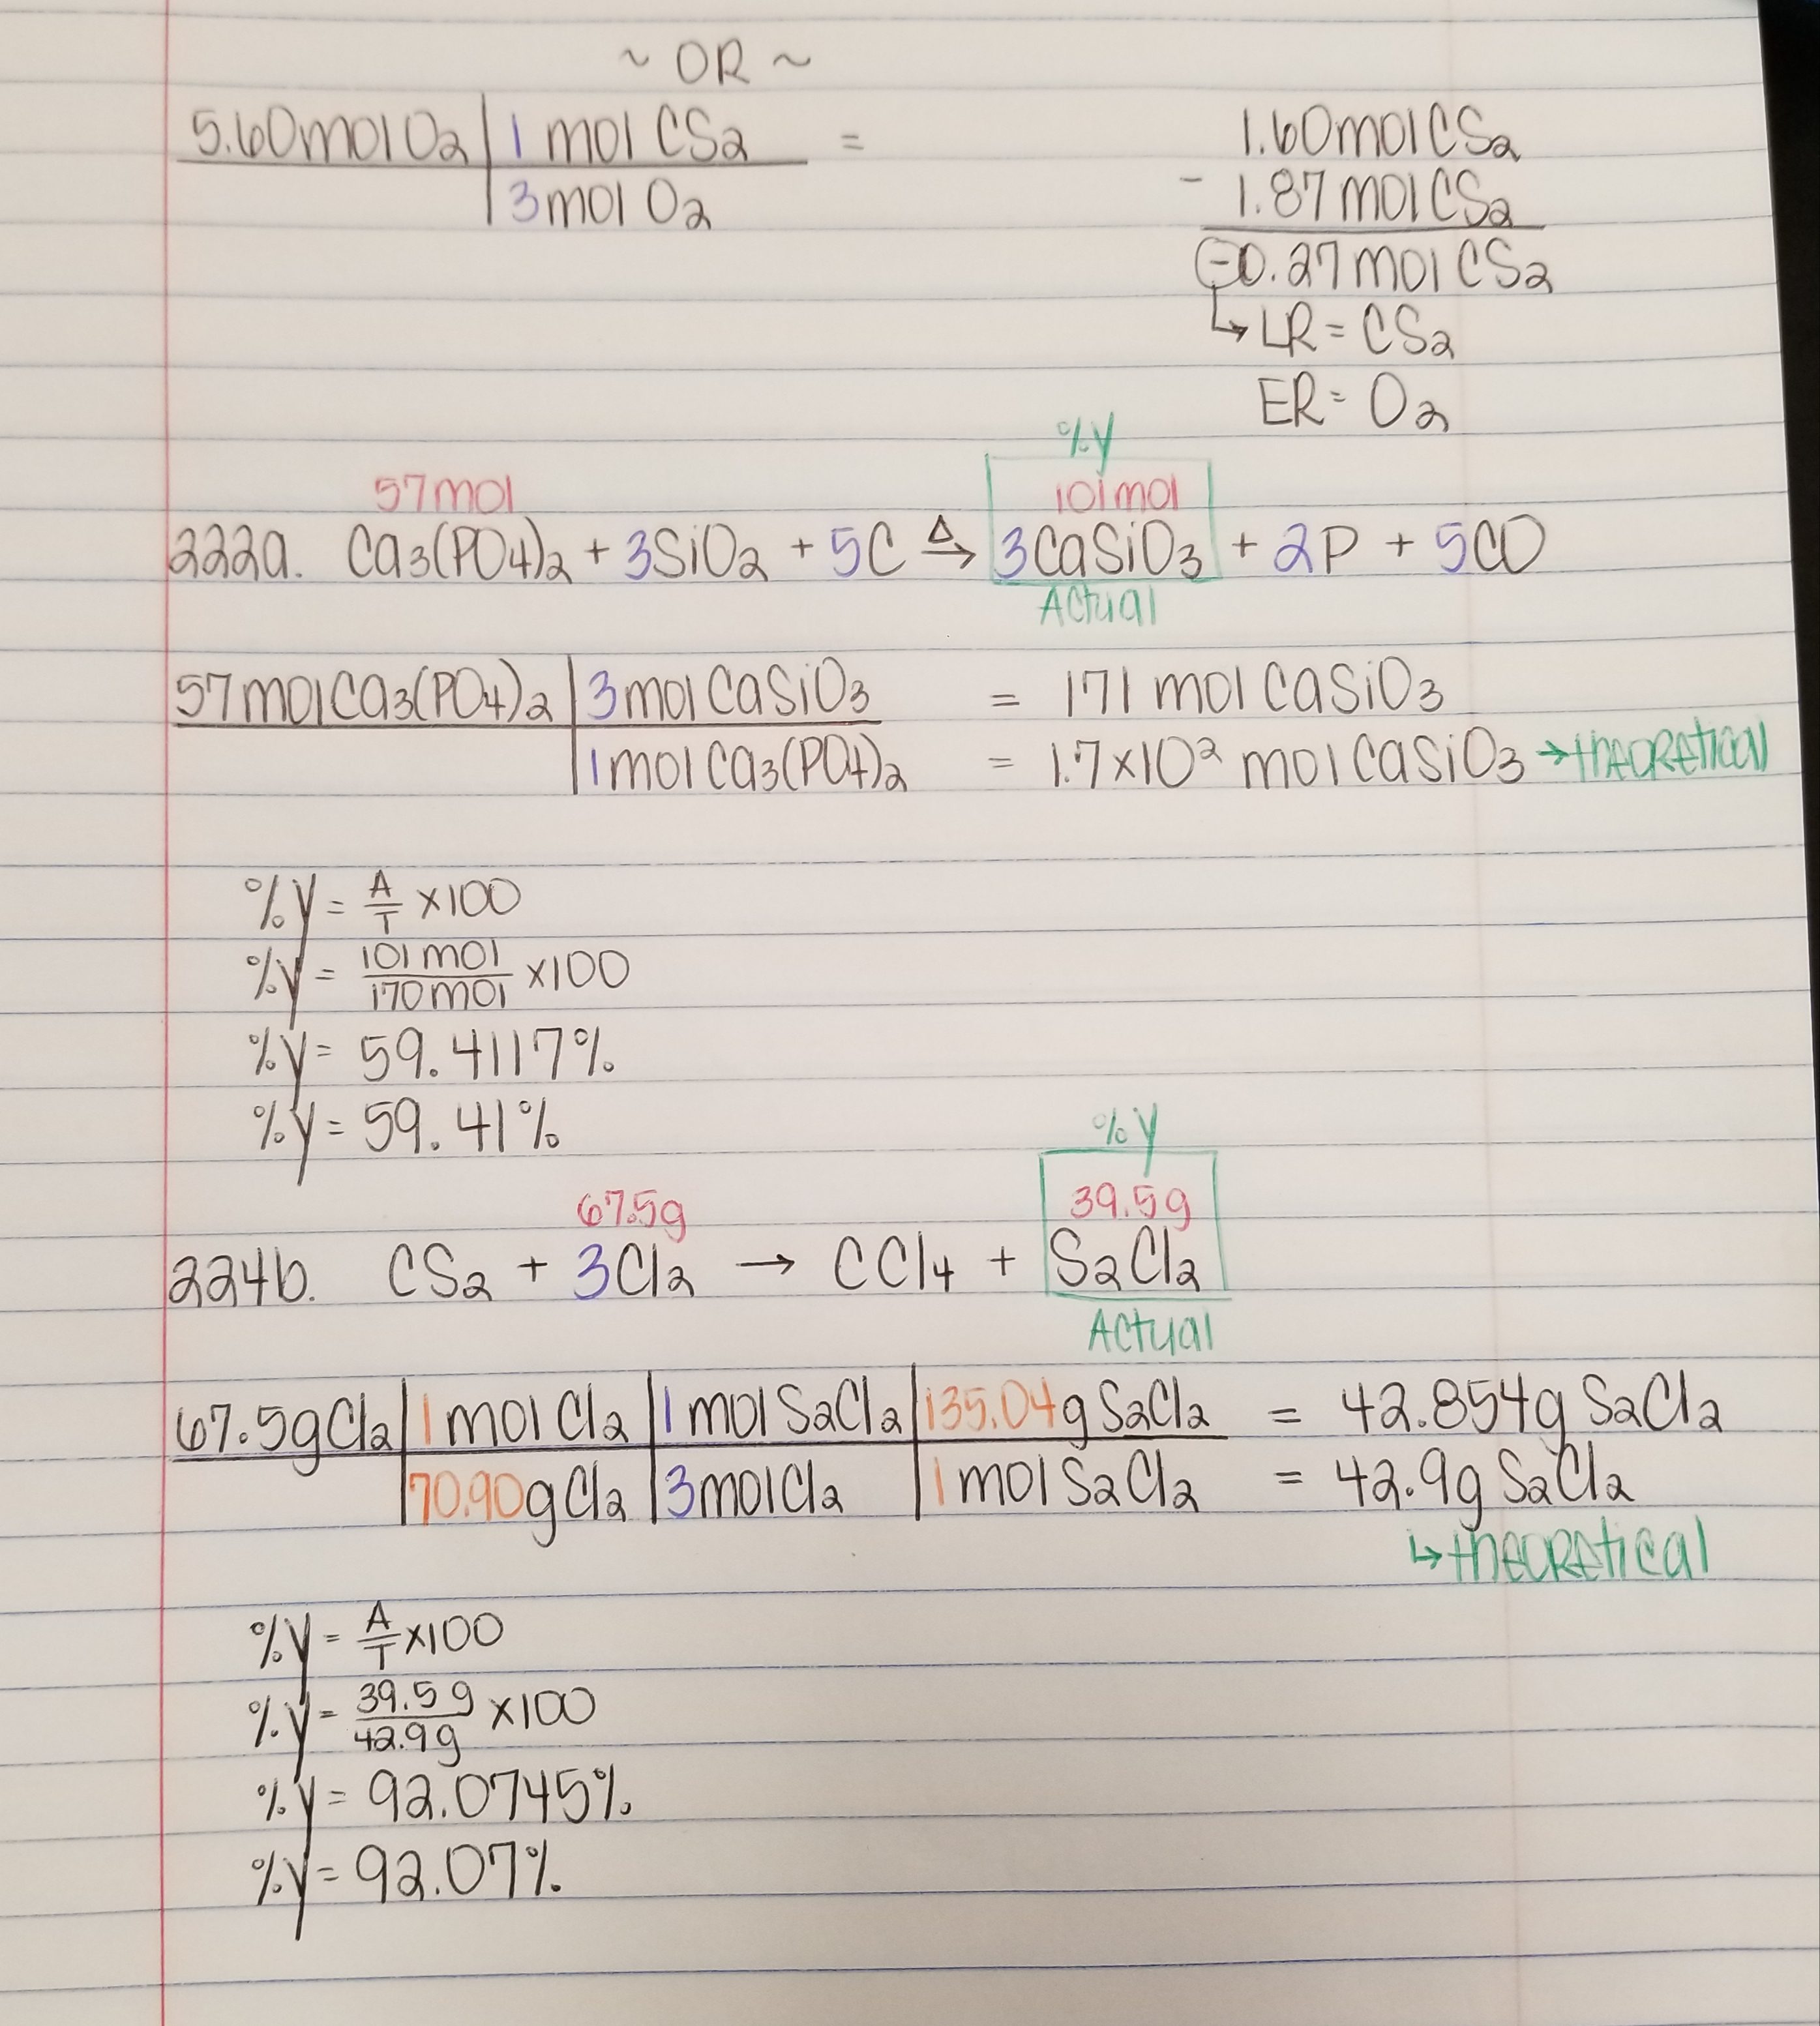 small resolution of Miss Gdaniec's Homework Website! Smile sgdaniec@mpslakers.com Homework  Assignments! Menu Home Home Page Back Home Page Home Page 2019 - 2020  Required Class Materials A1: Chemistry CP Back A1: Chemistry CP A1:  Chemistry CP ...